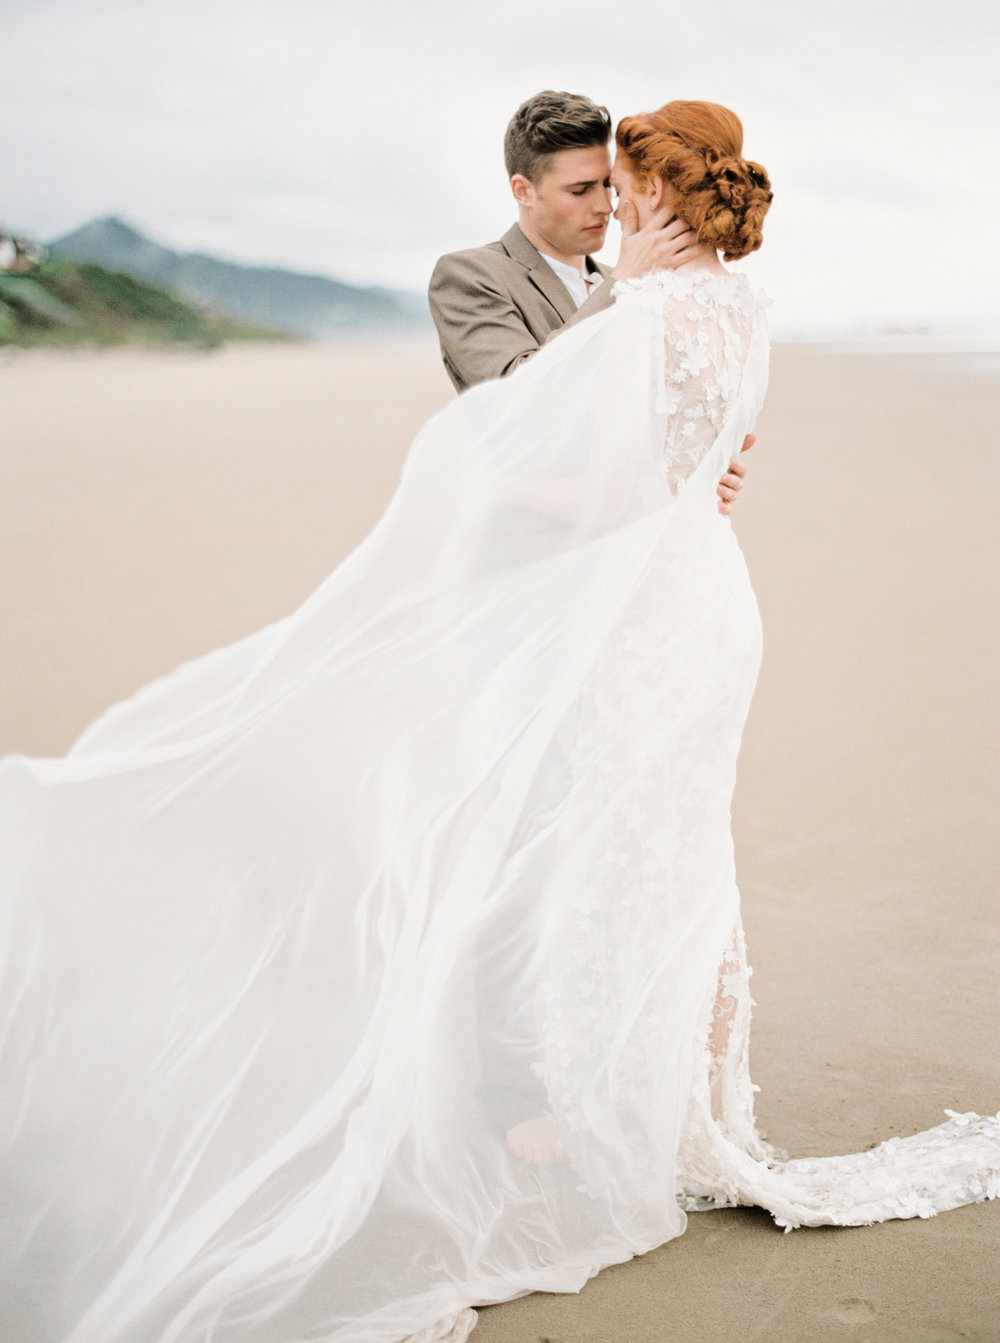 041@outlivecreative_cannon_beach_destination_wedding_photographer_&_videographer.jpg